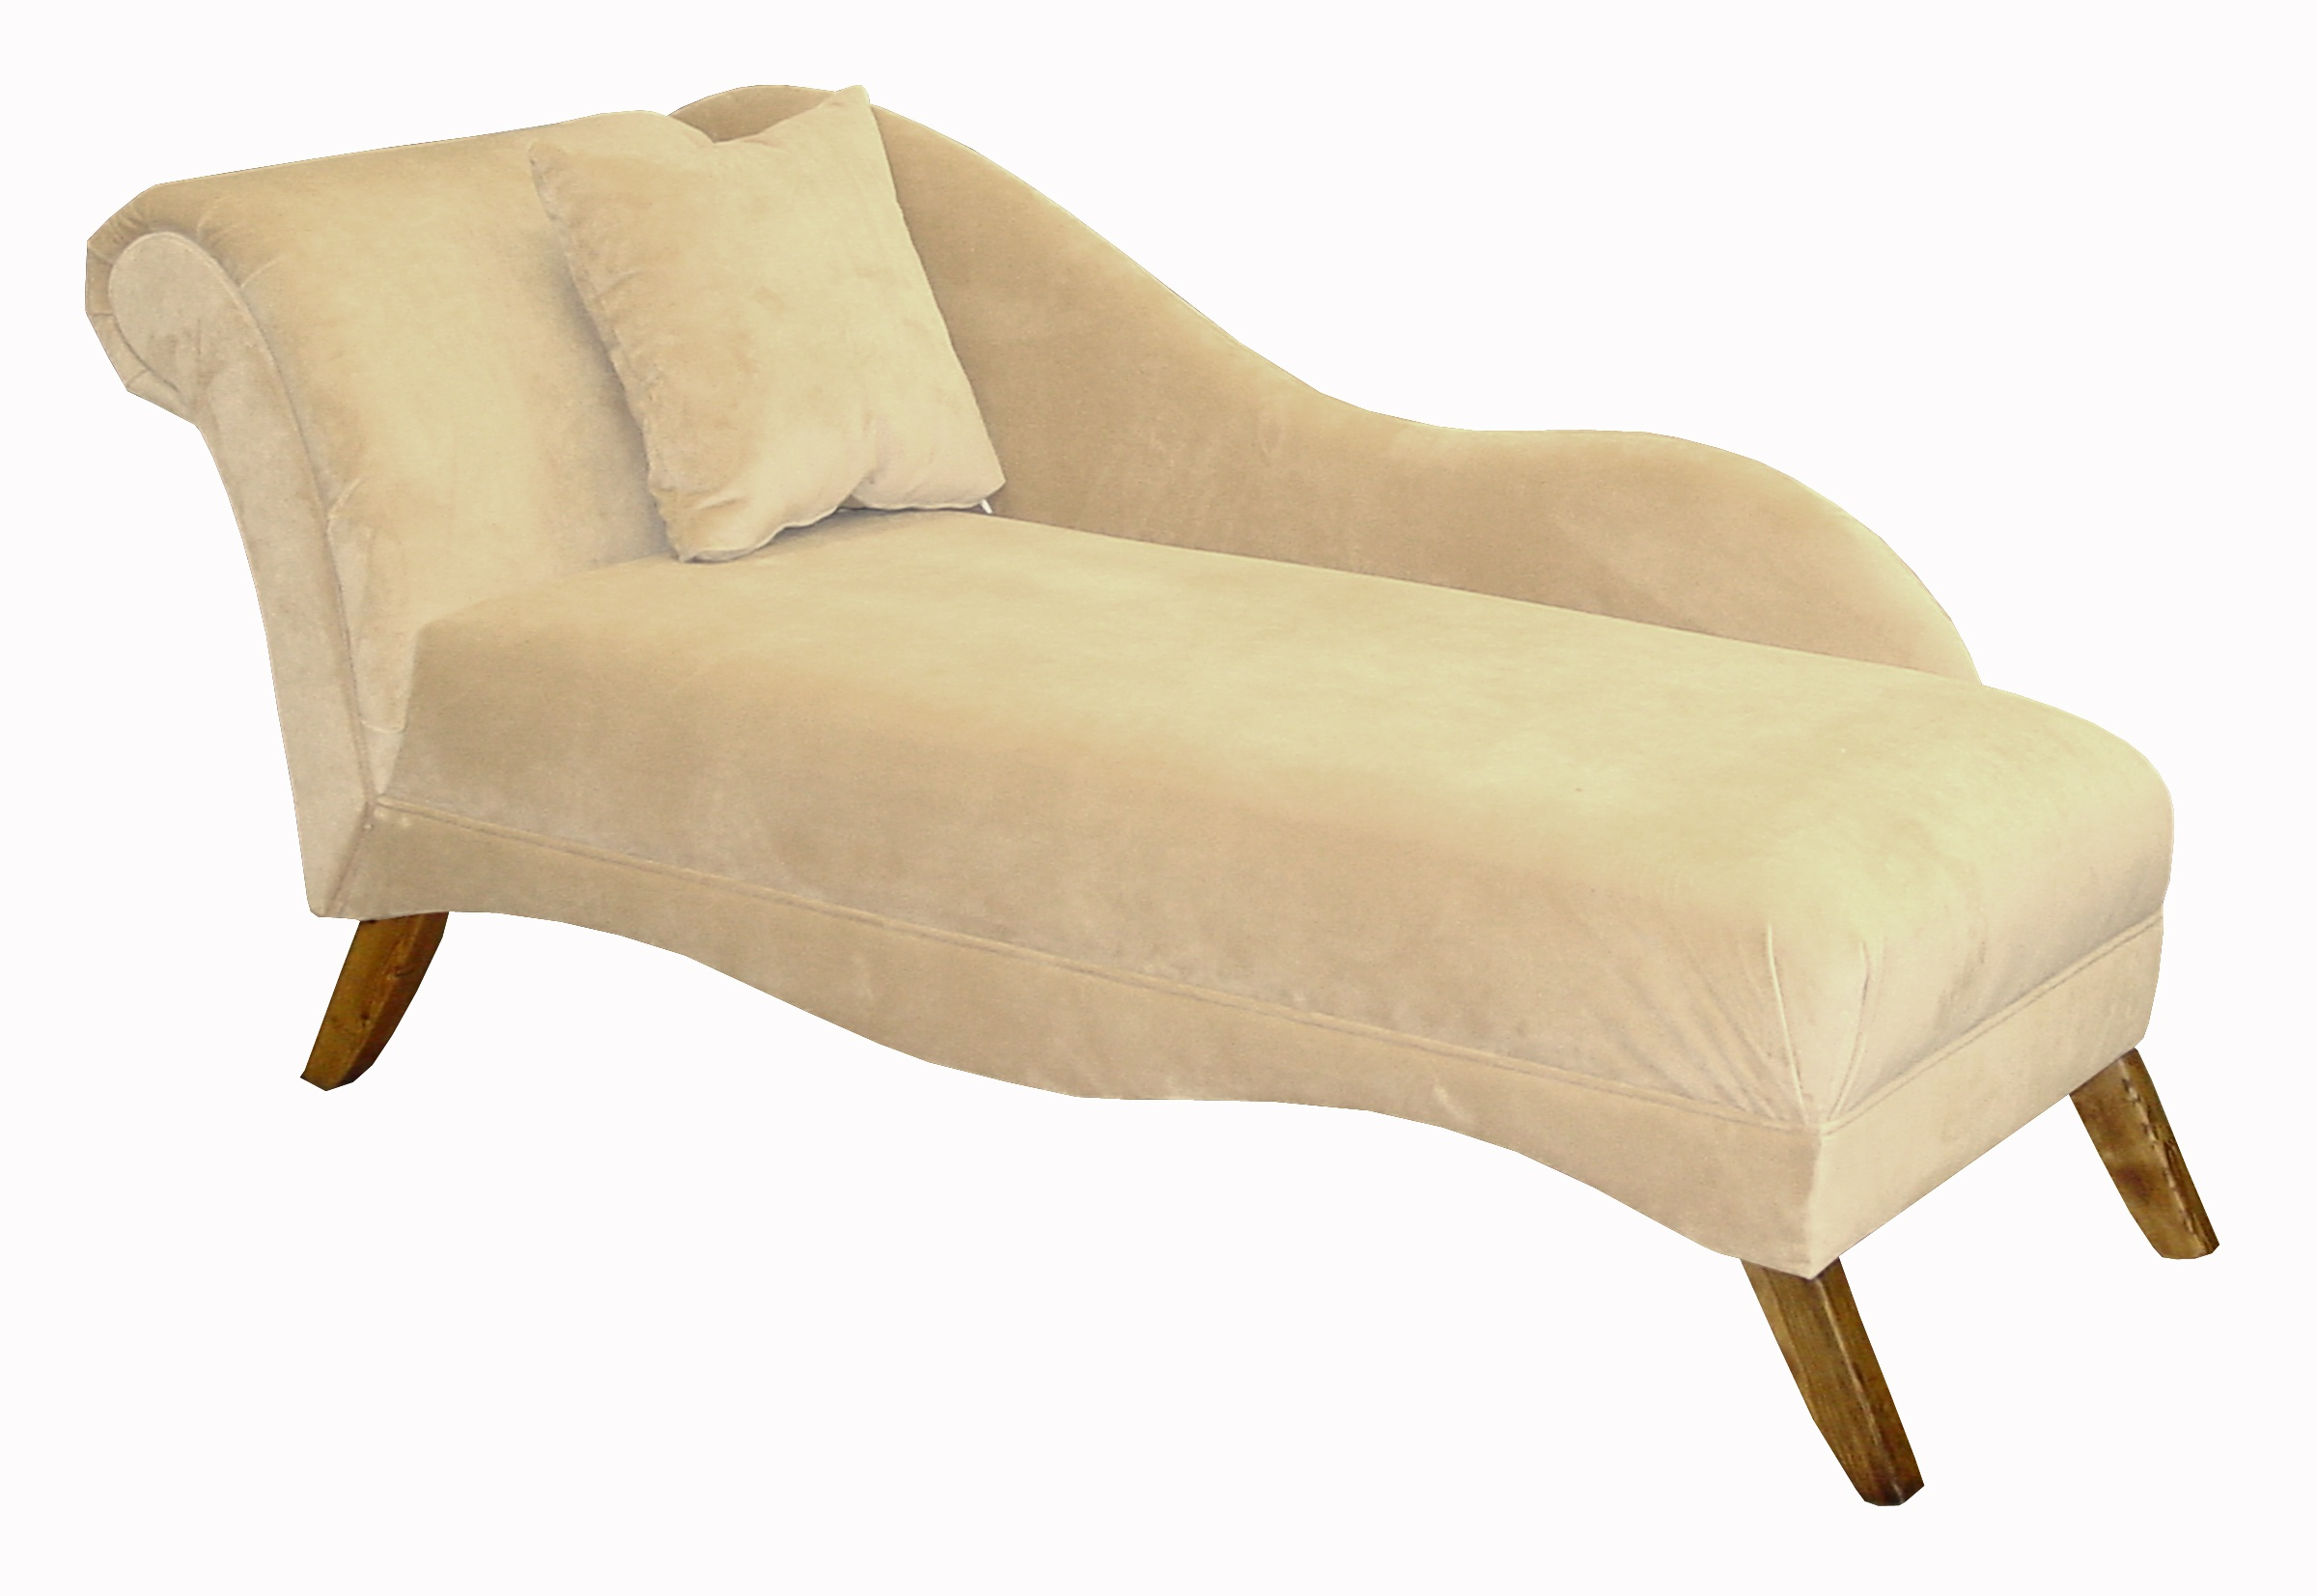 Image of: Ikea Antibodi Chaise Lounge